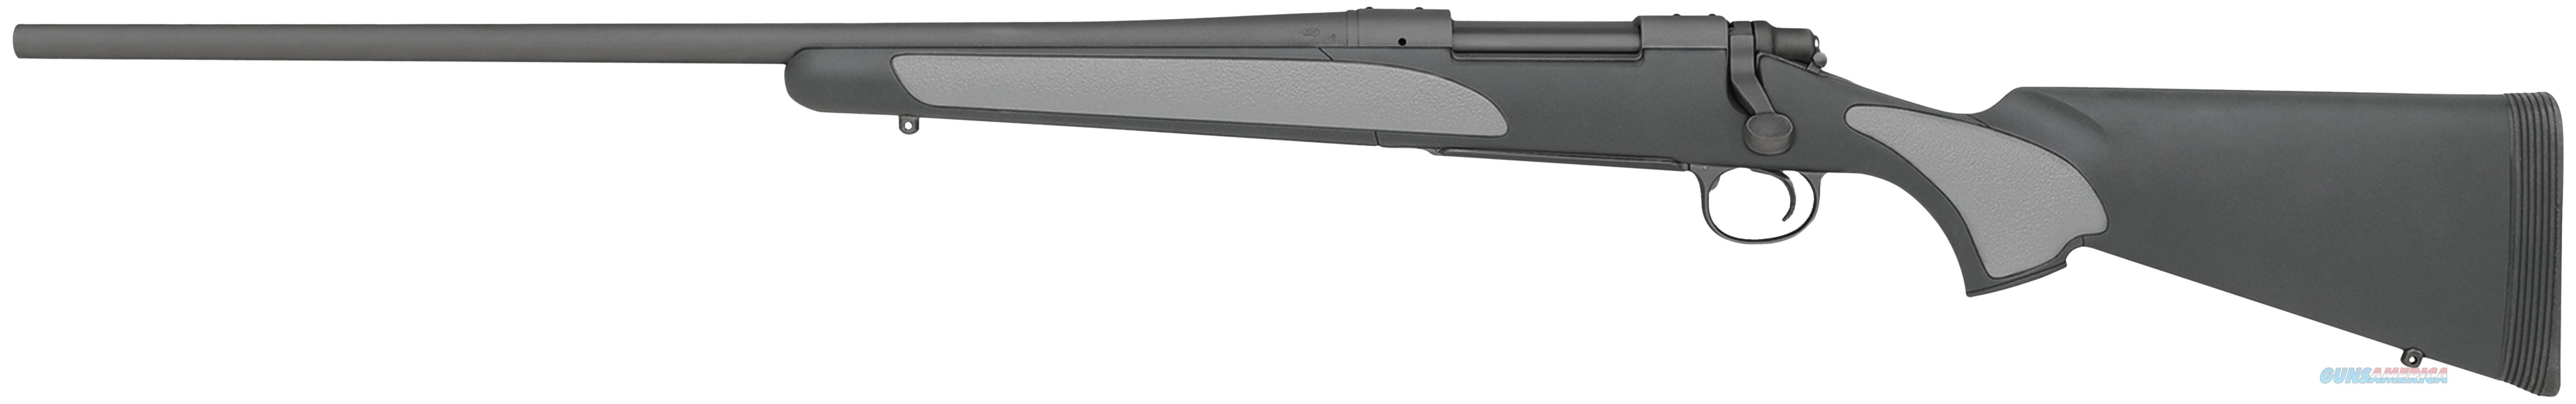 Remington 700 Sps Lh 270Win 24 84177  Guns > Rifles > R Misc Rifles